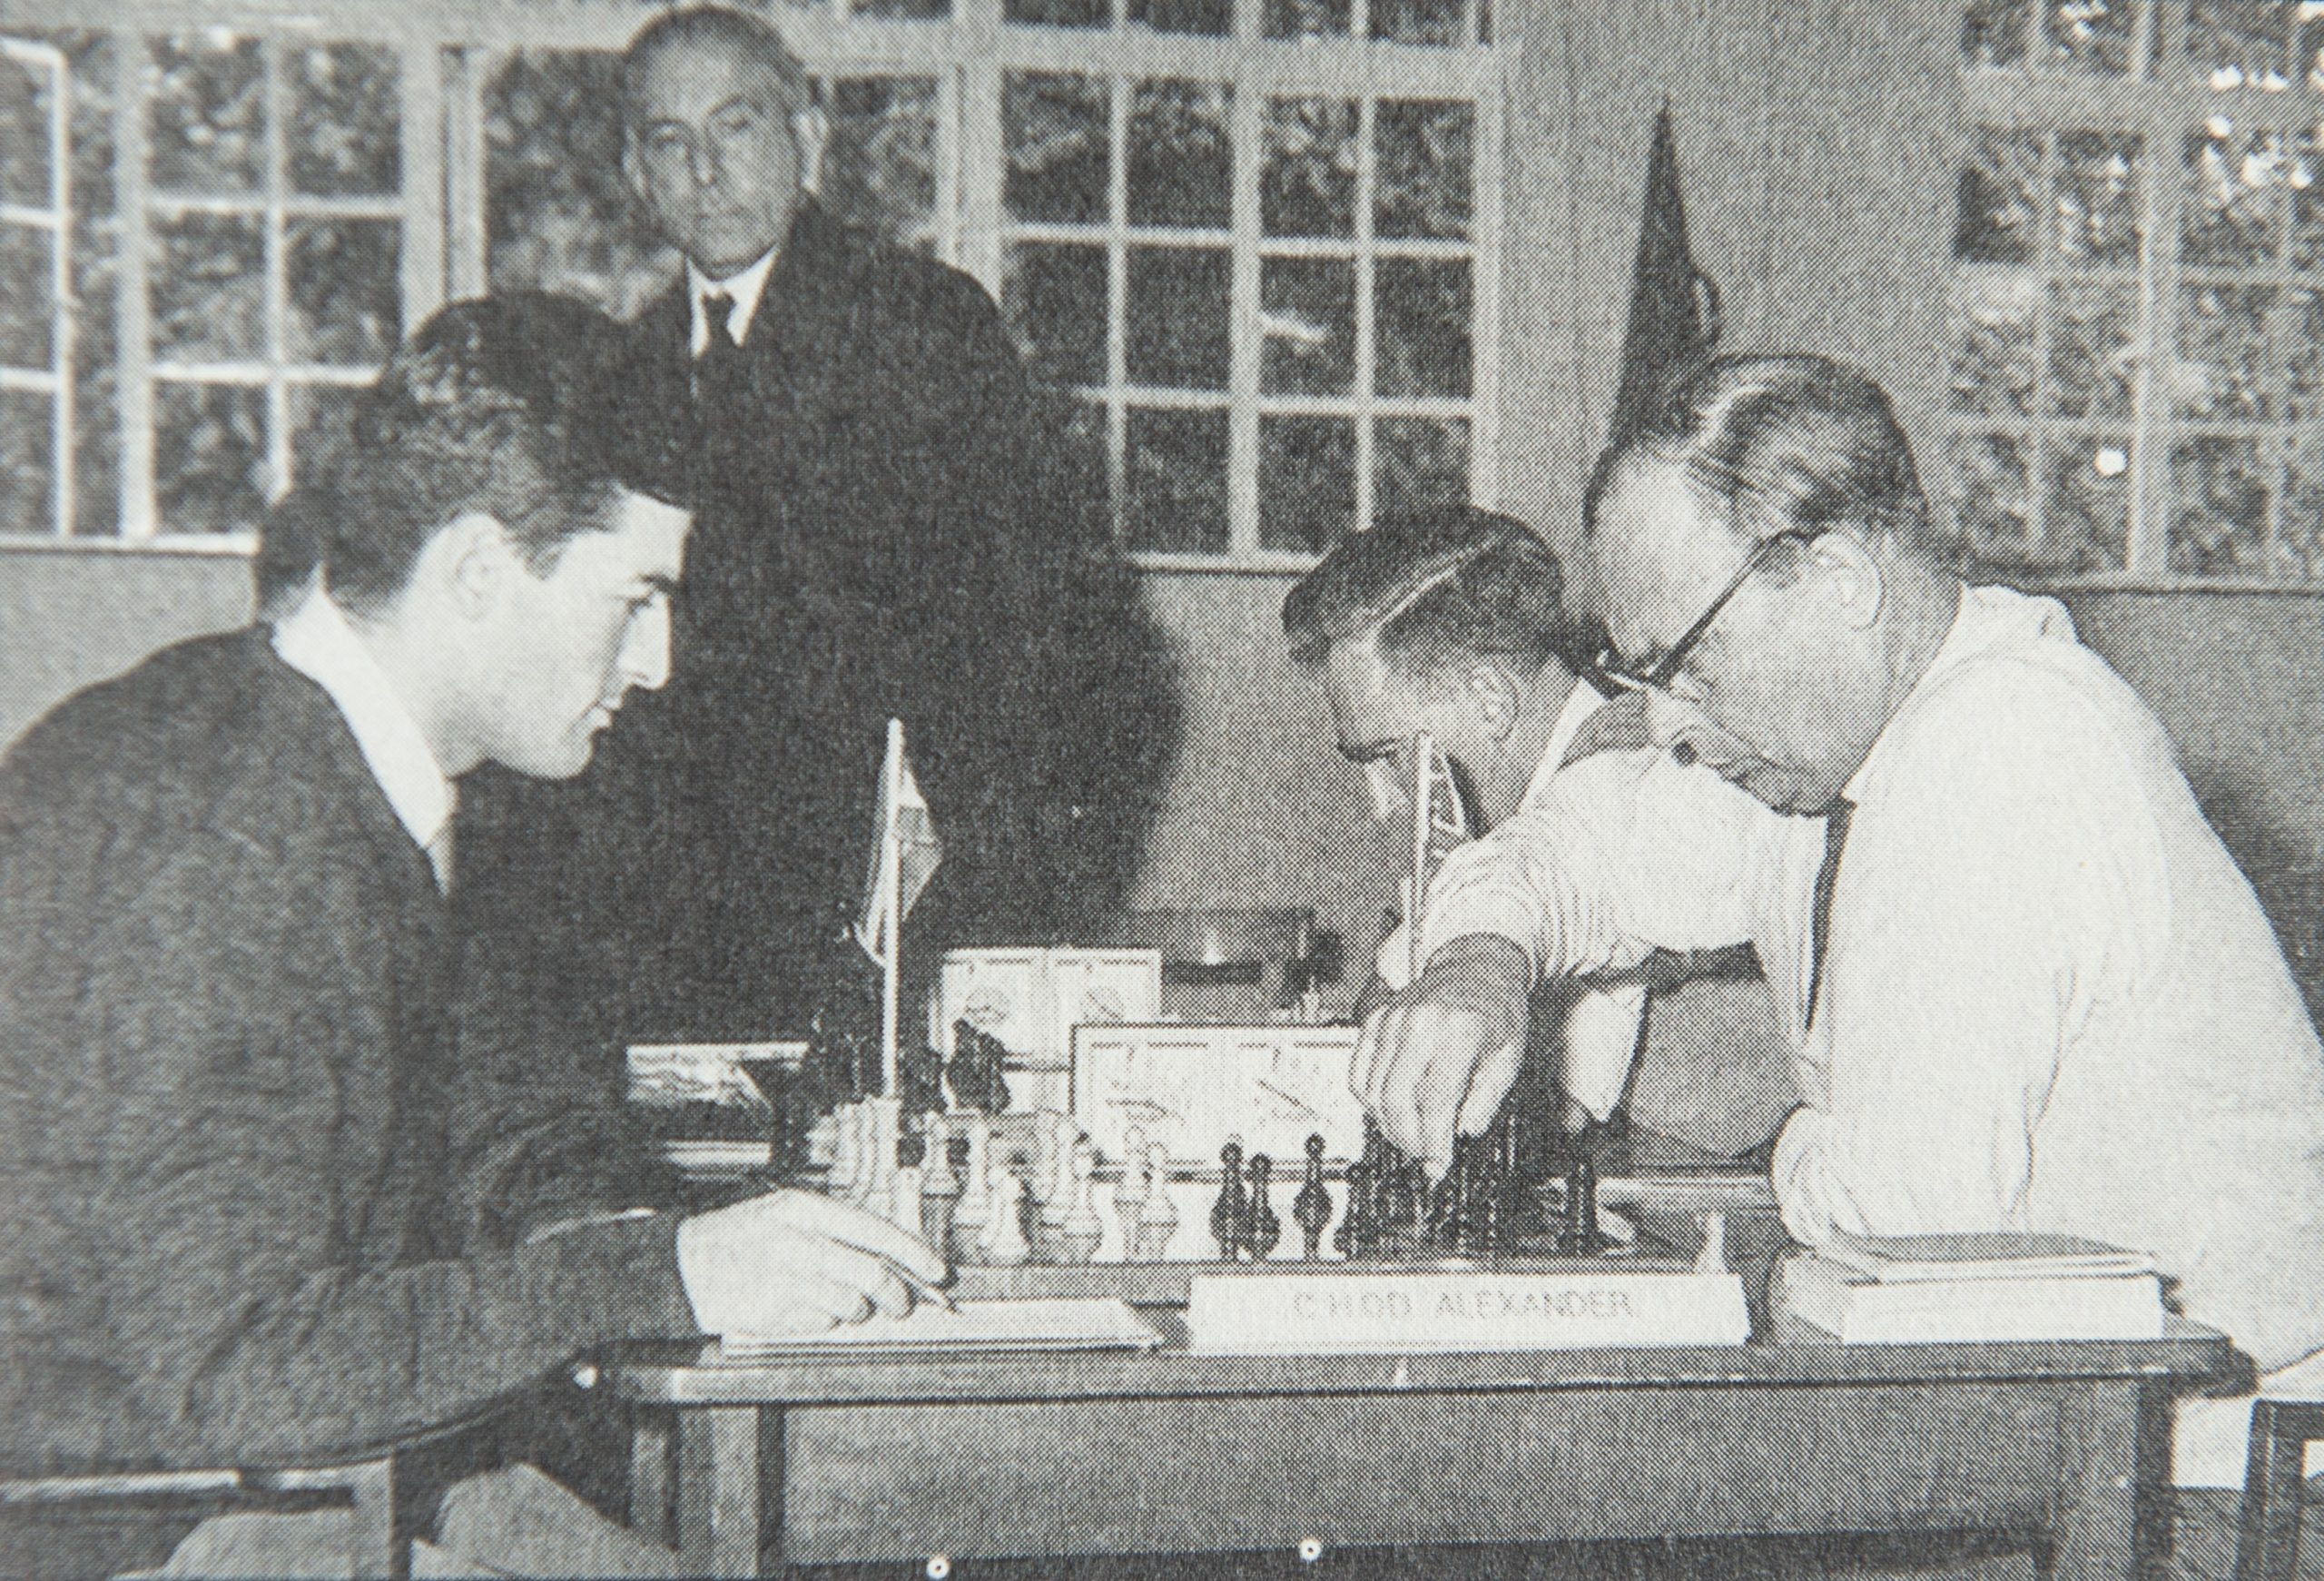 Kick Langeweg plays Hugh Alexander in the Anglo-Dutch Match of October 7th , 1961. Peter Clarke (right) is playing Johan Teunis Barendregt and Harry Golombek observes